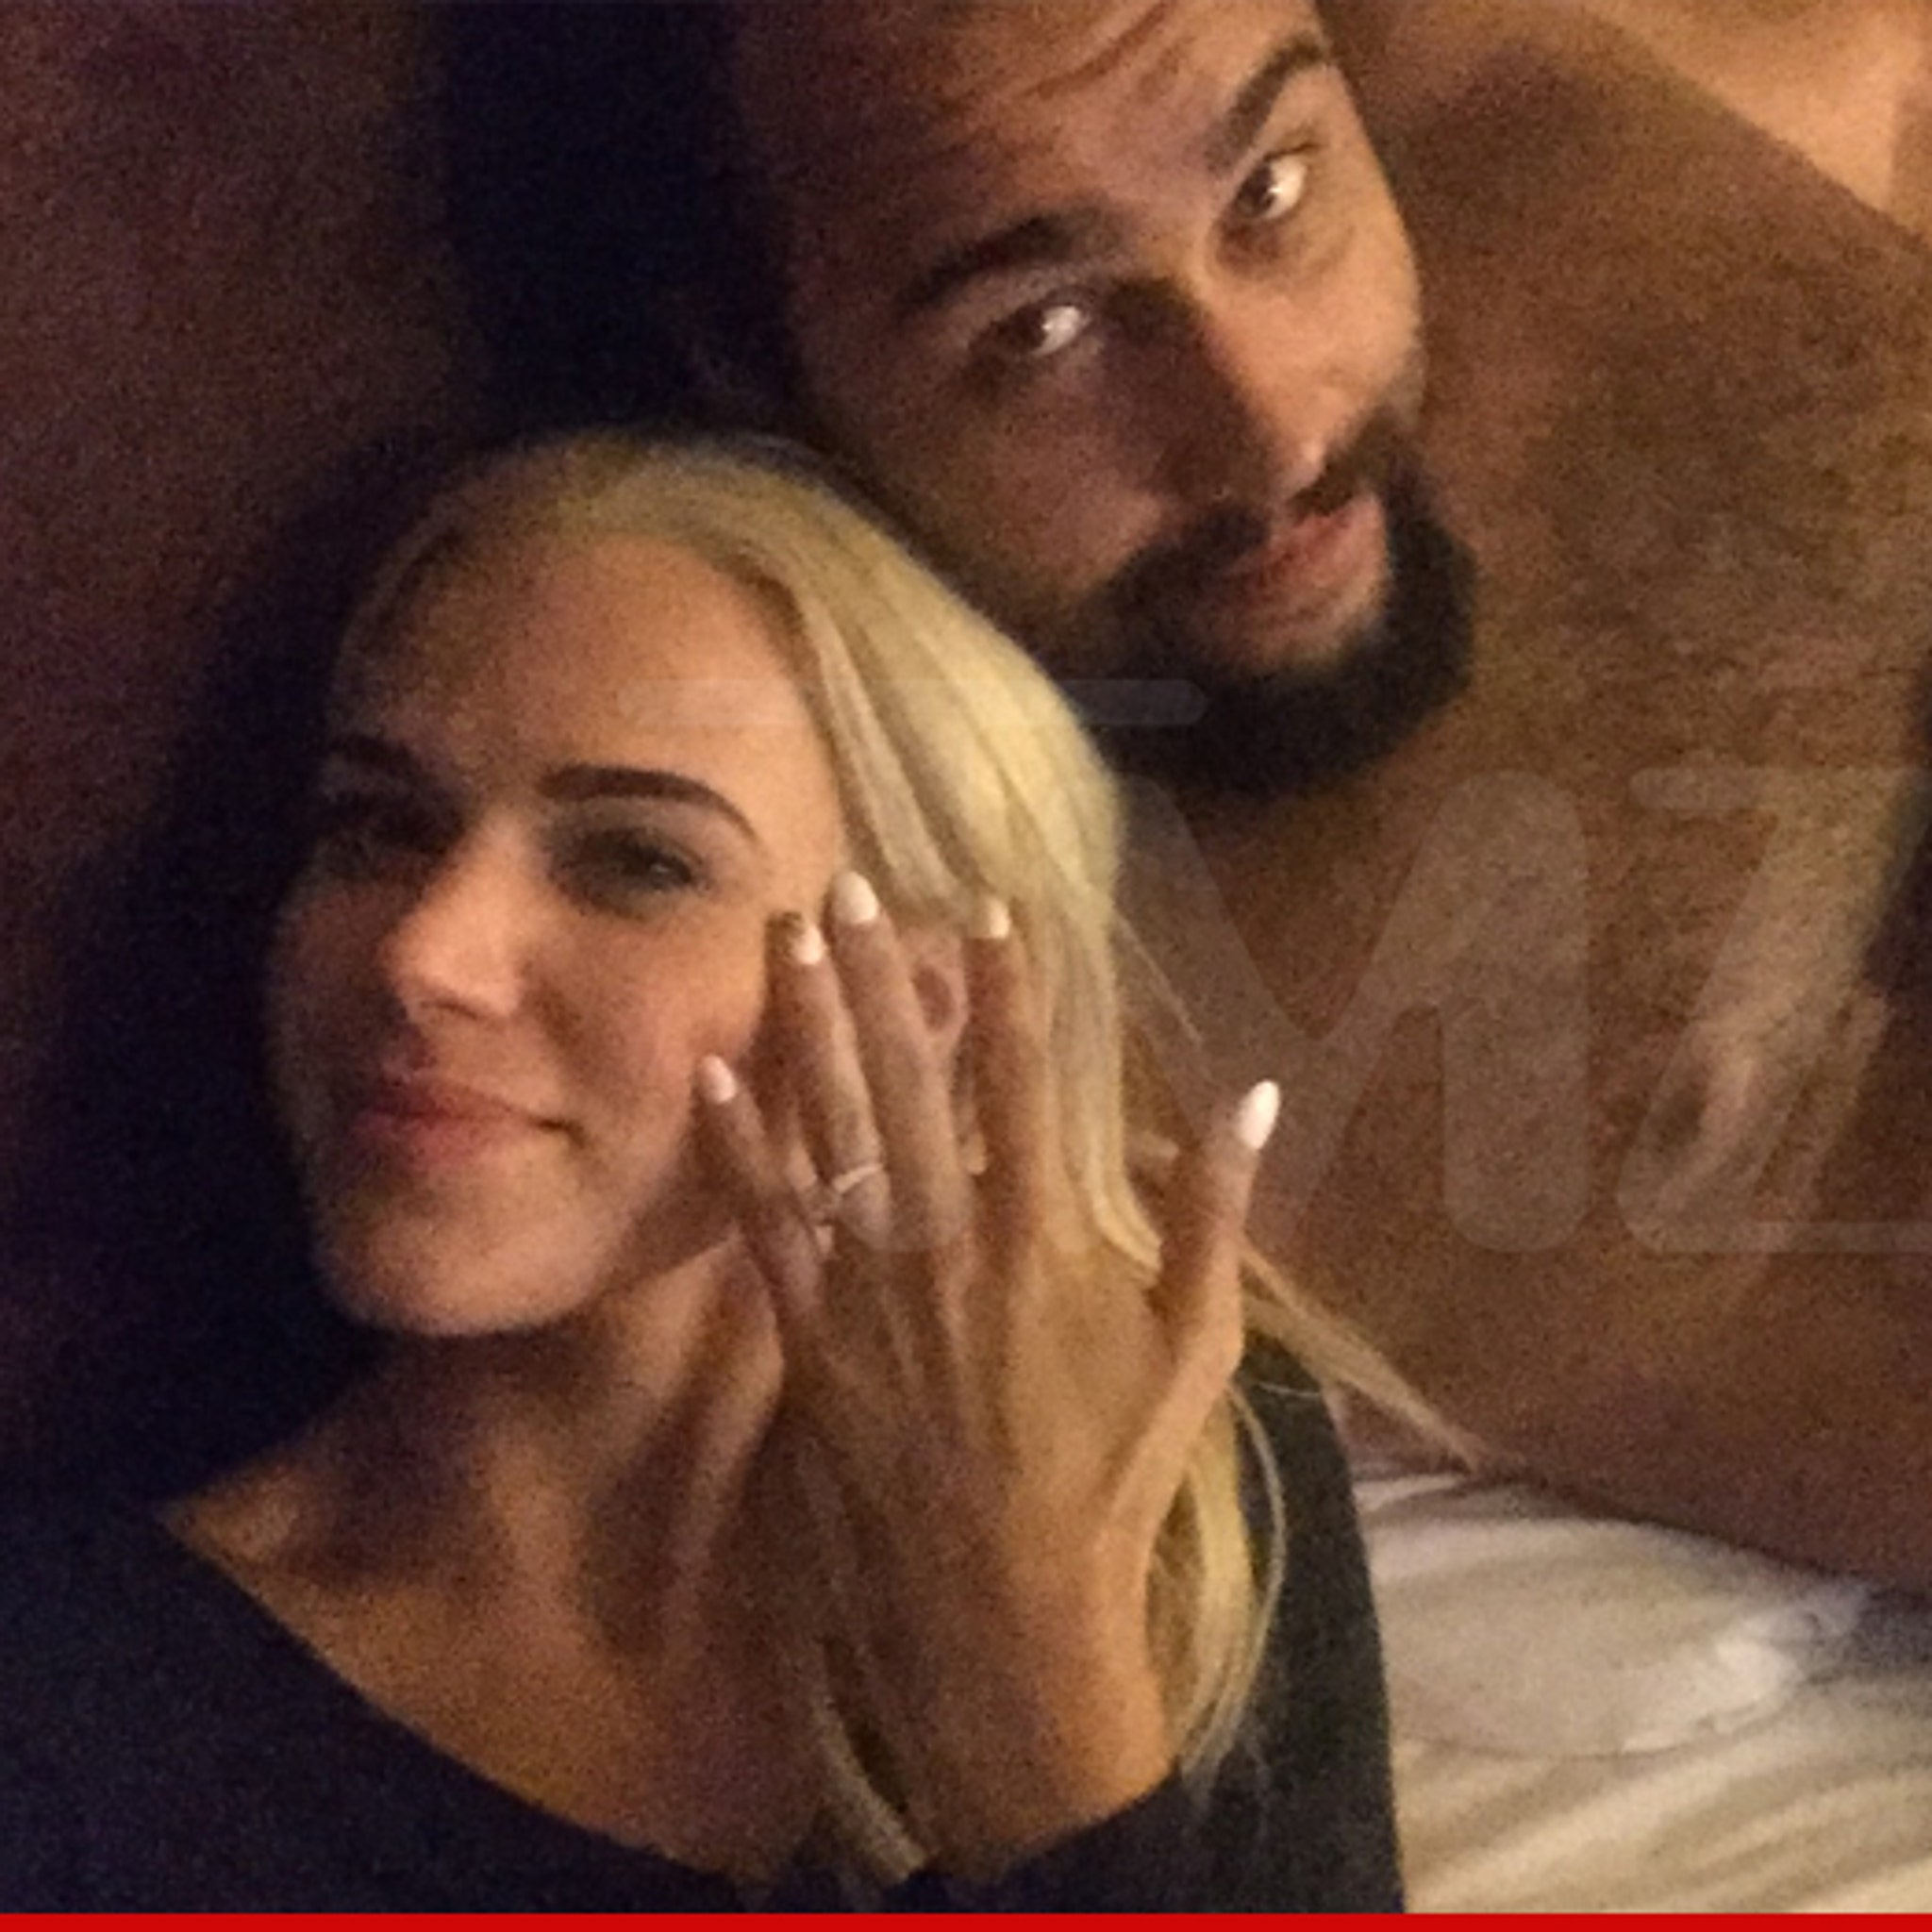 WWE Blamed Lana For Leaked Engagement Photo With Rusev 138